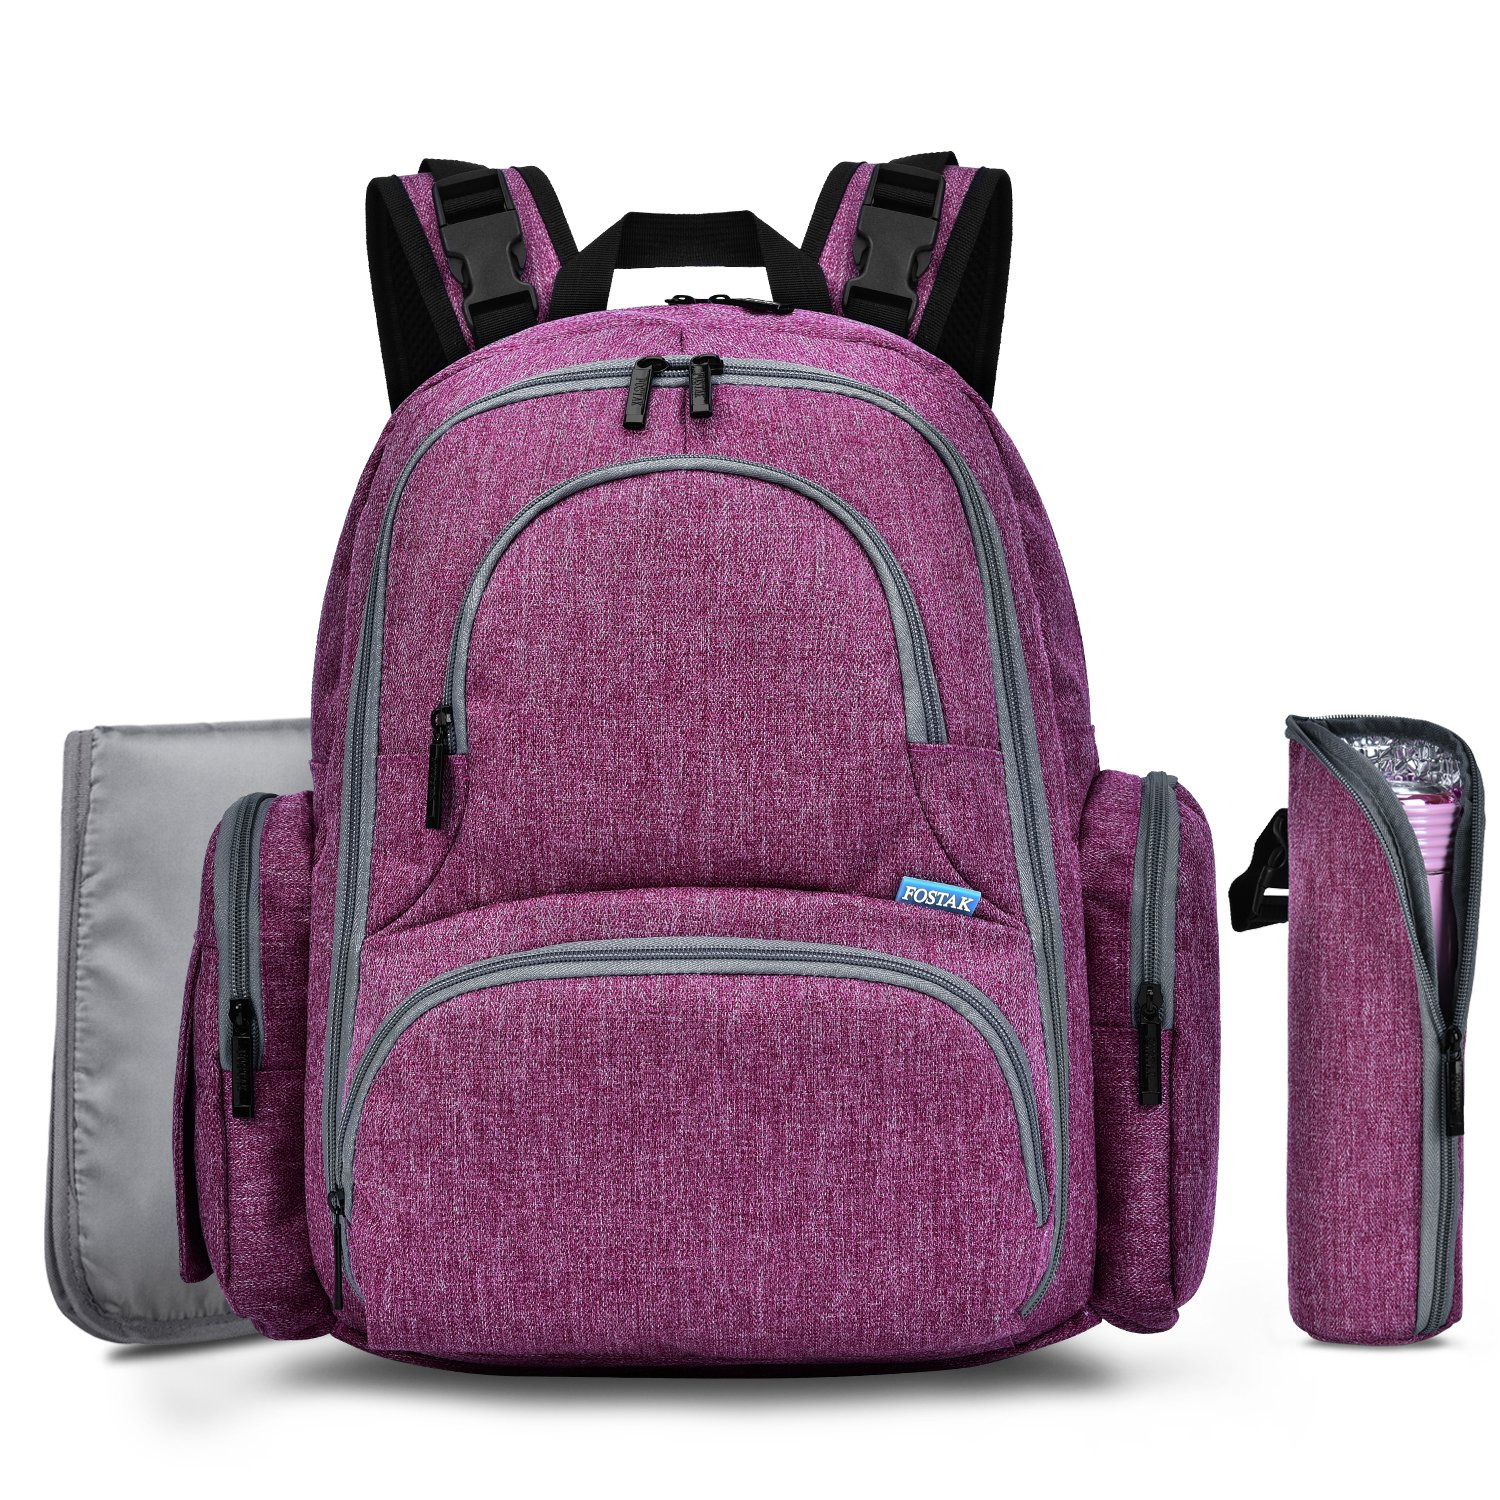 Diaper Bag Backpack for Girls Boys, Large Capacity Moms Dads Nappy Bags Organizer Travel Baby Diaper Backpack w/Stroller Straps, Changing Pad & Insulated Pockets, Multi-Function Durable & Stylish, Purple BRINCH